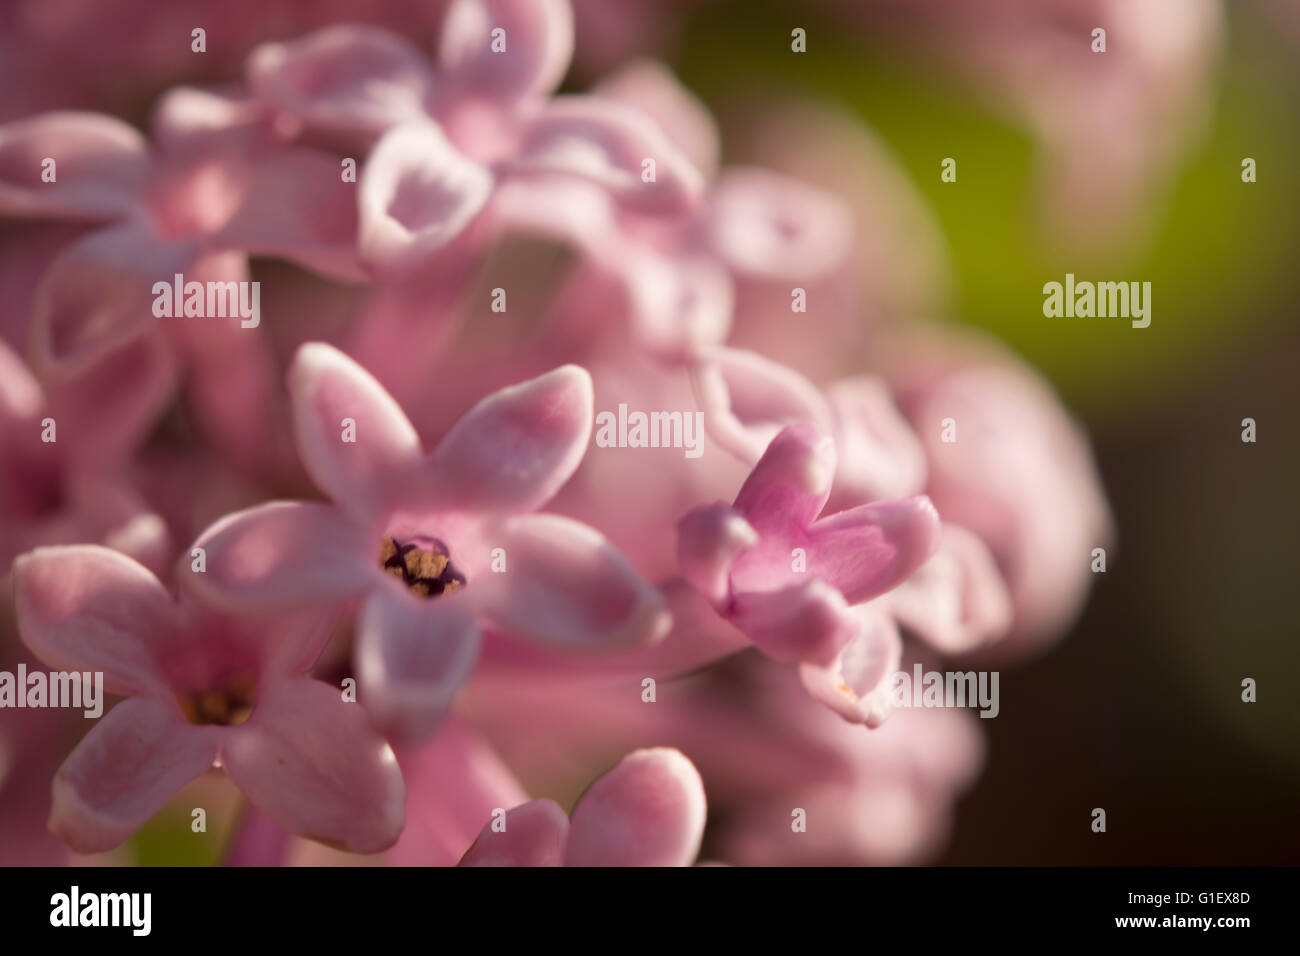 lilac flower blossoms close up - Stock Image